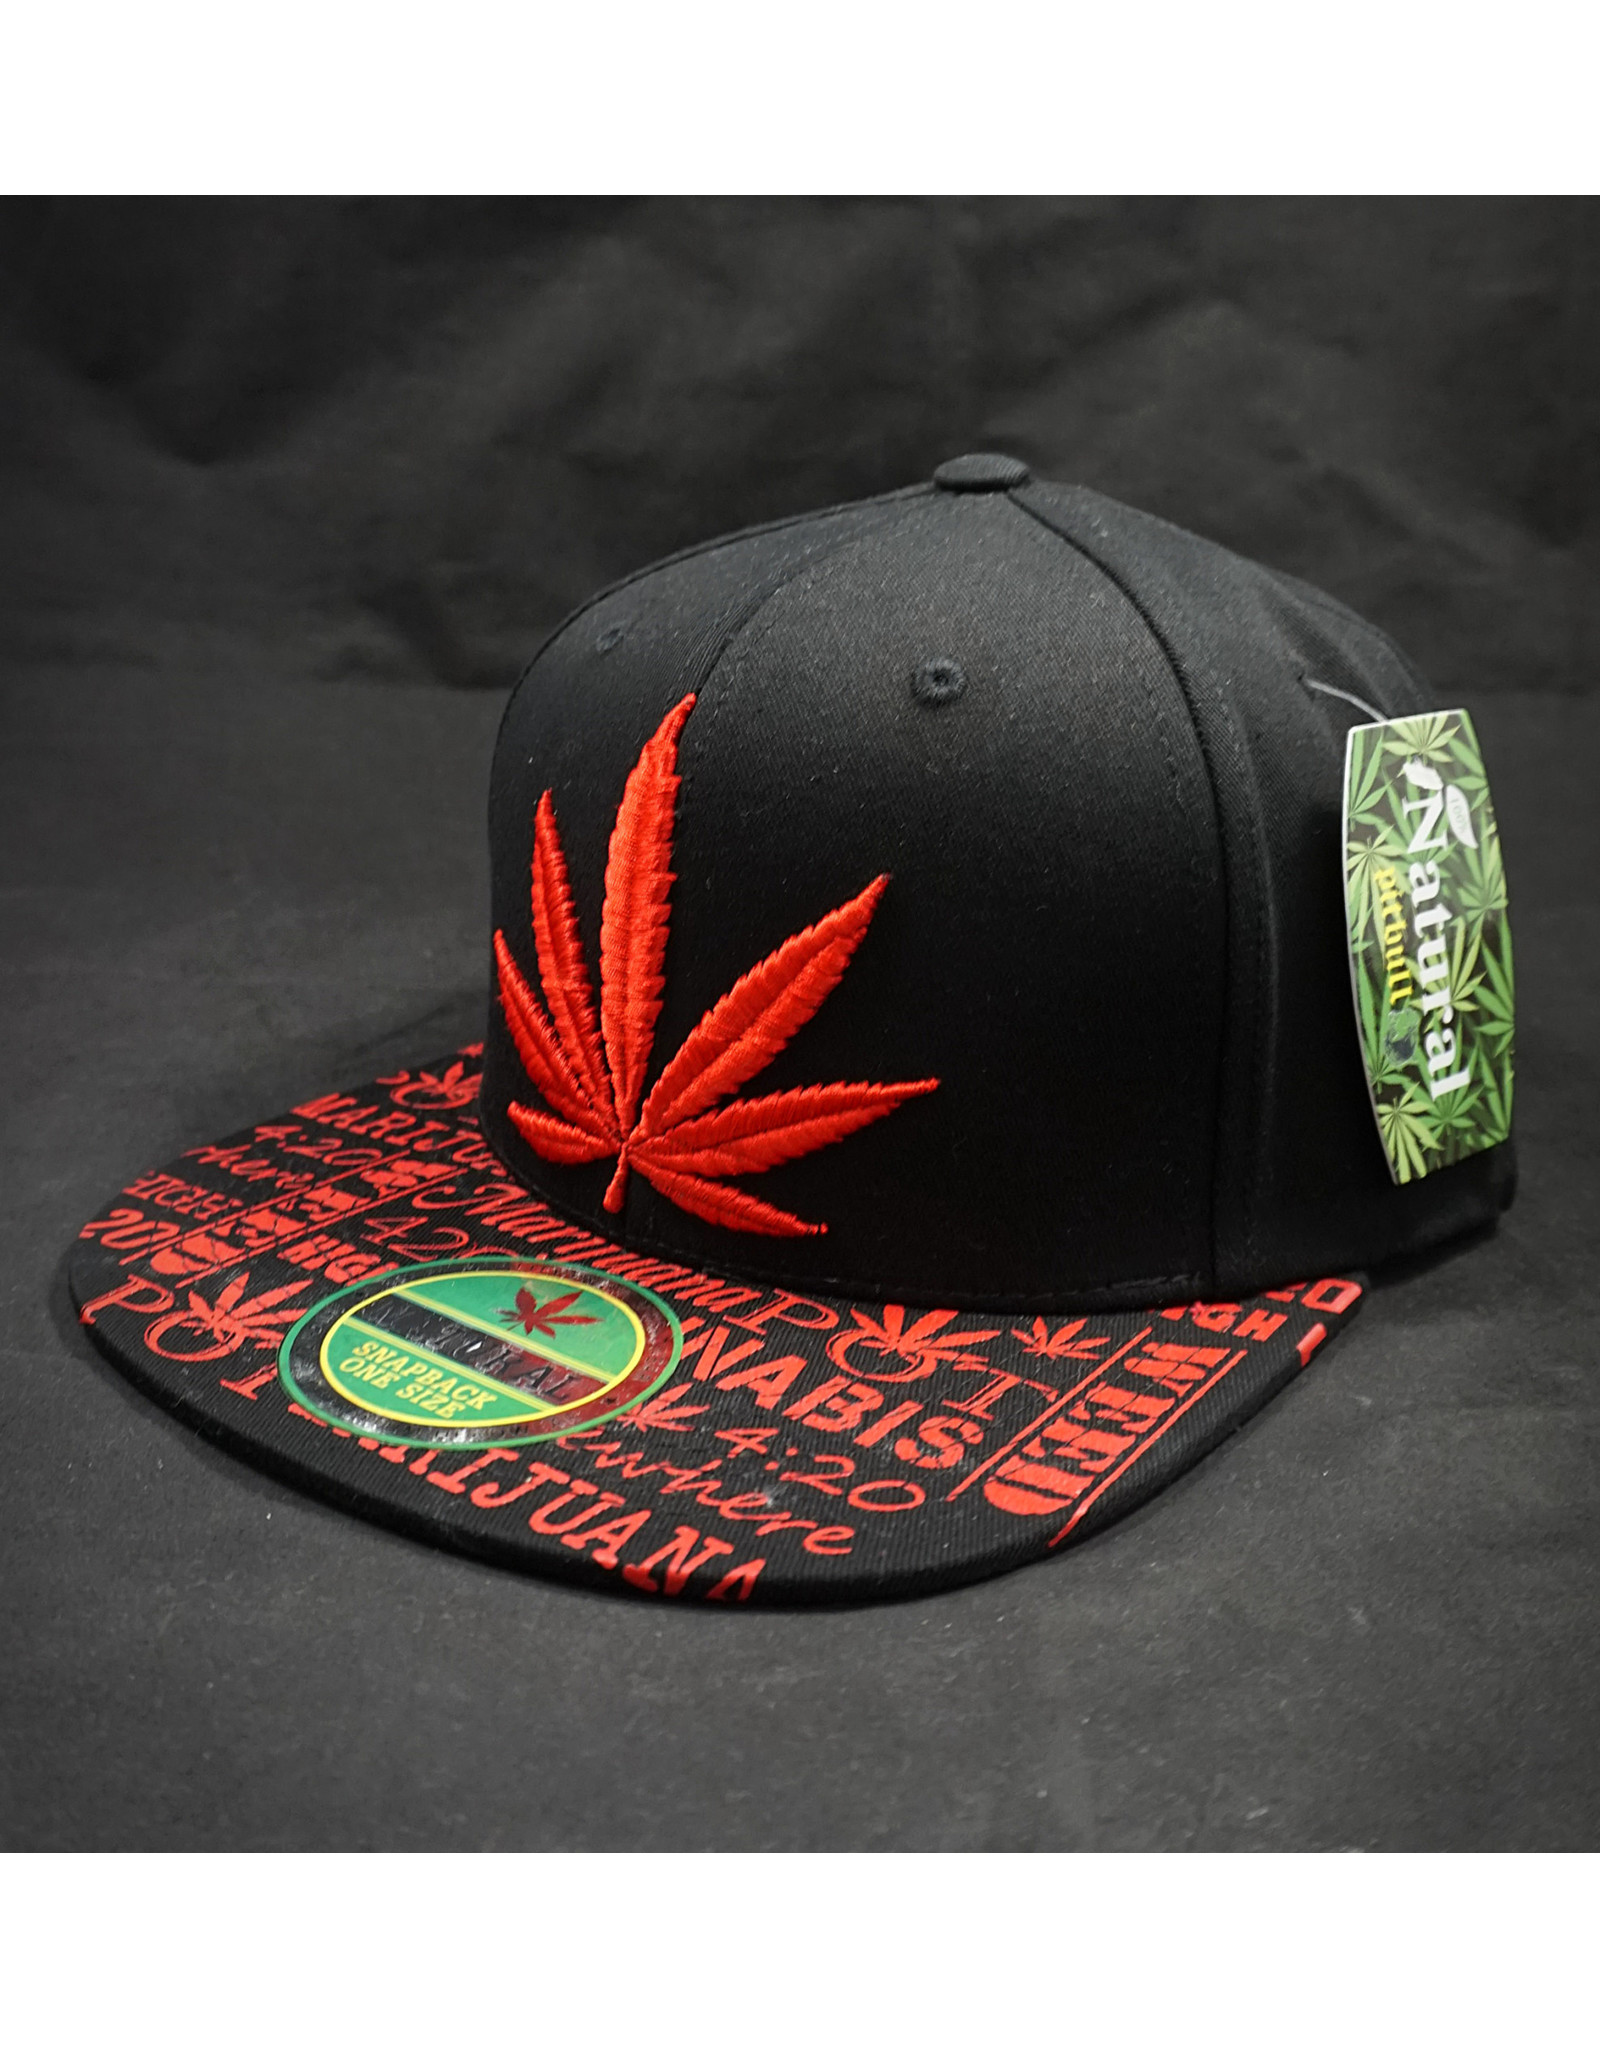 Black Cap Red Leaf Hat